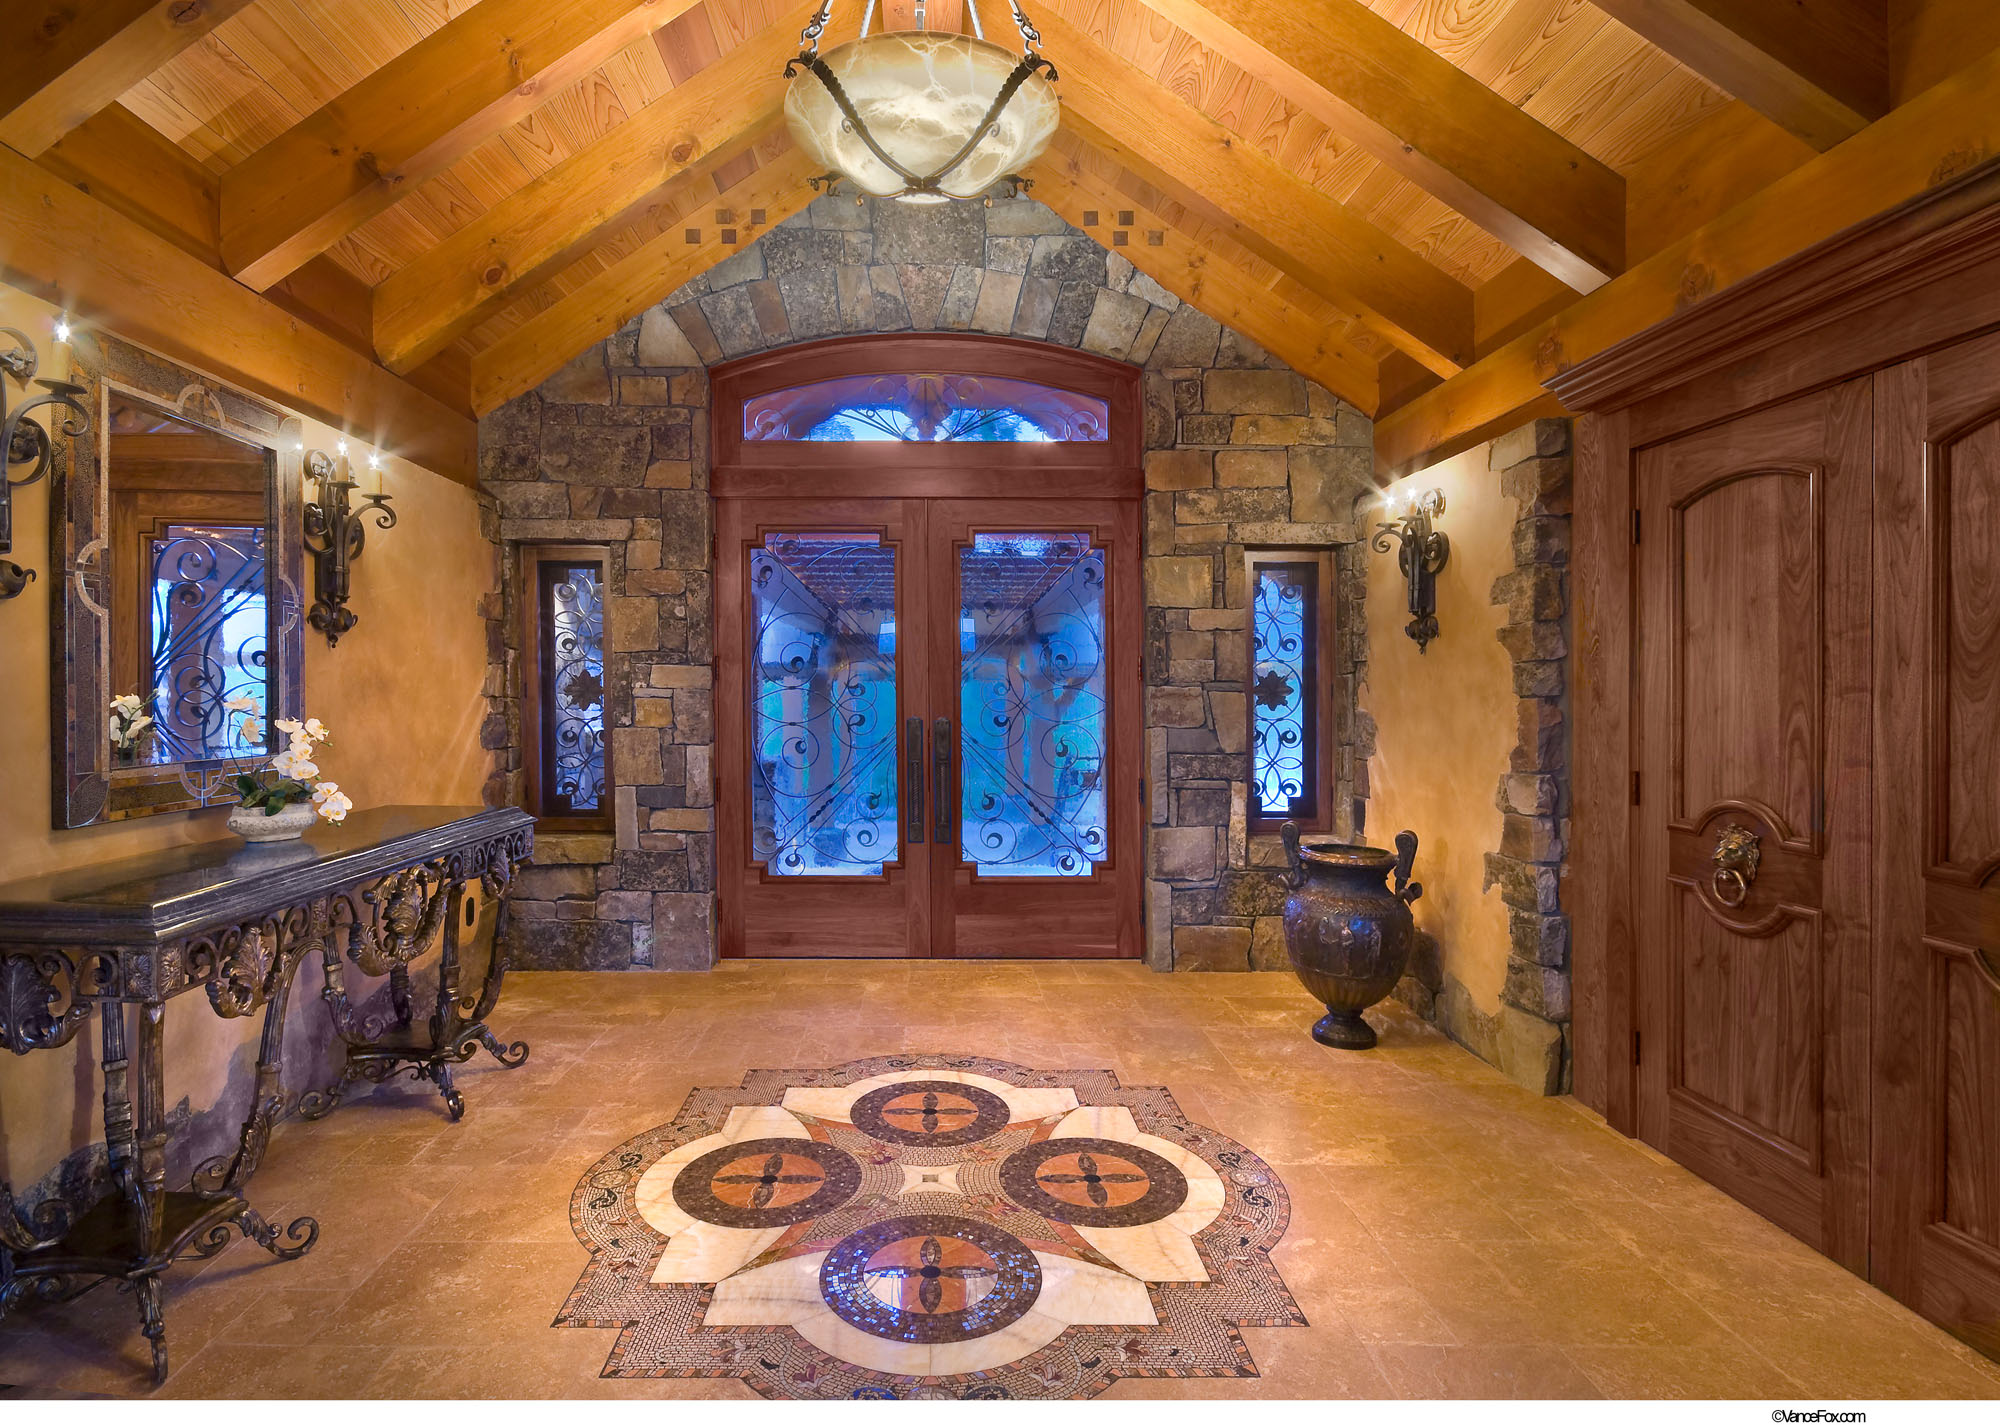 Entry area with door grills sconces and chandelier